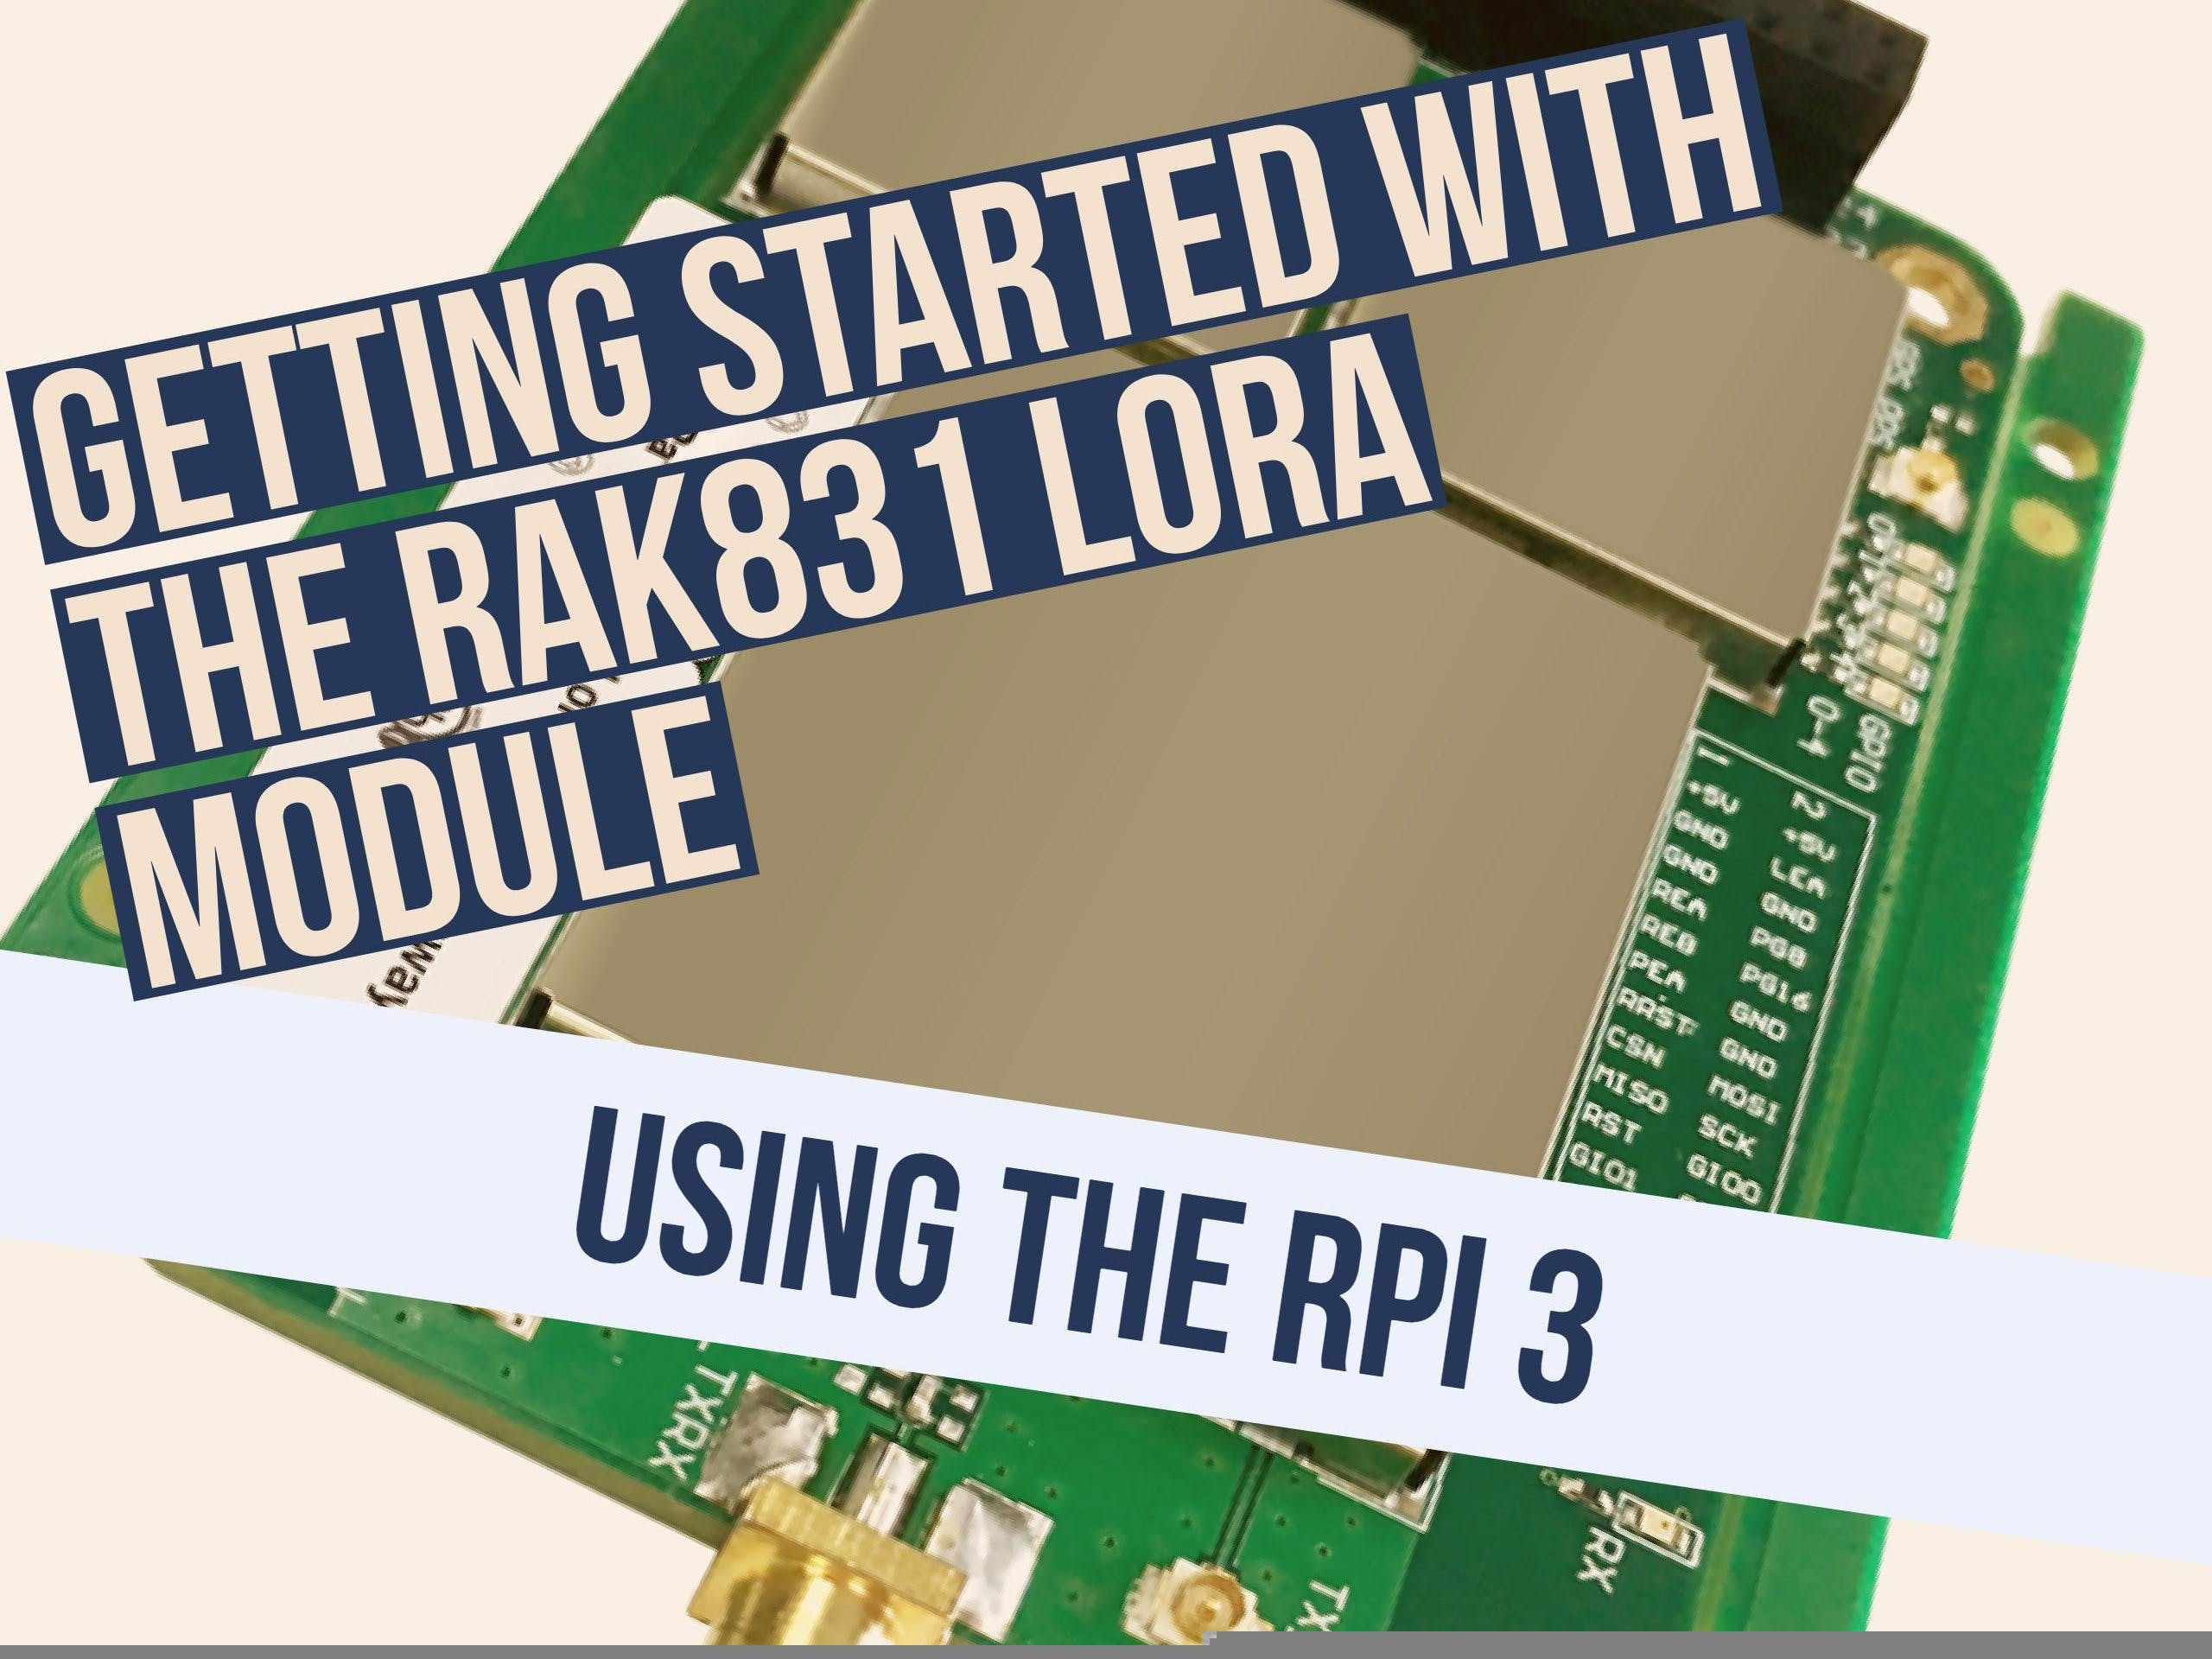 Getting started with the RAK 831 Lora Gateway and RPi3